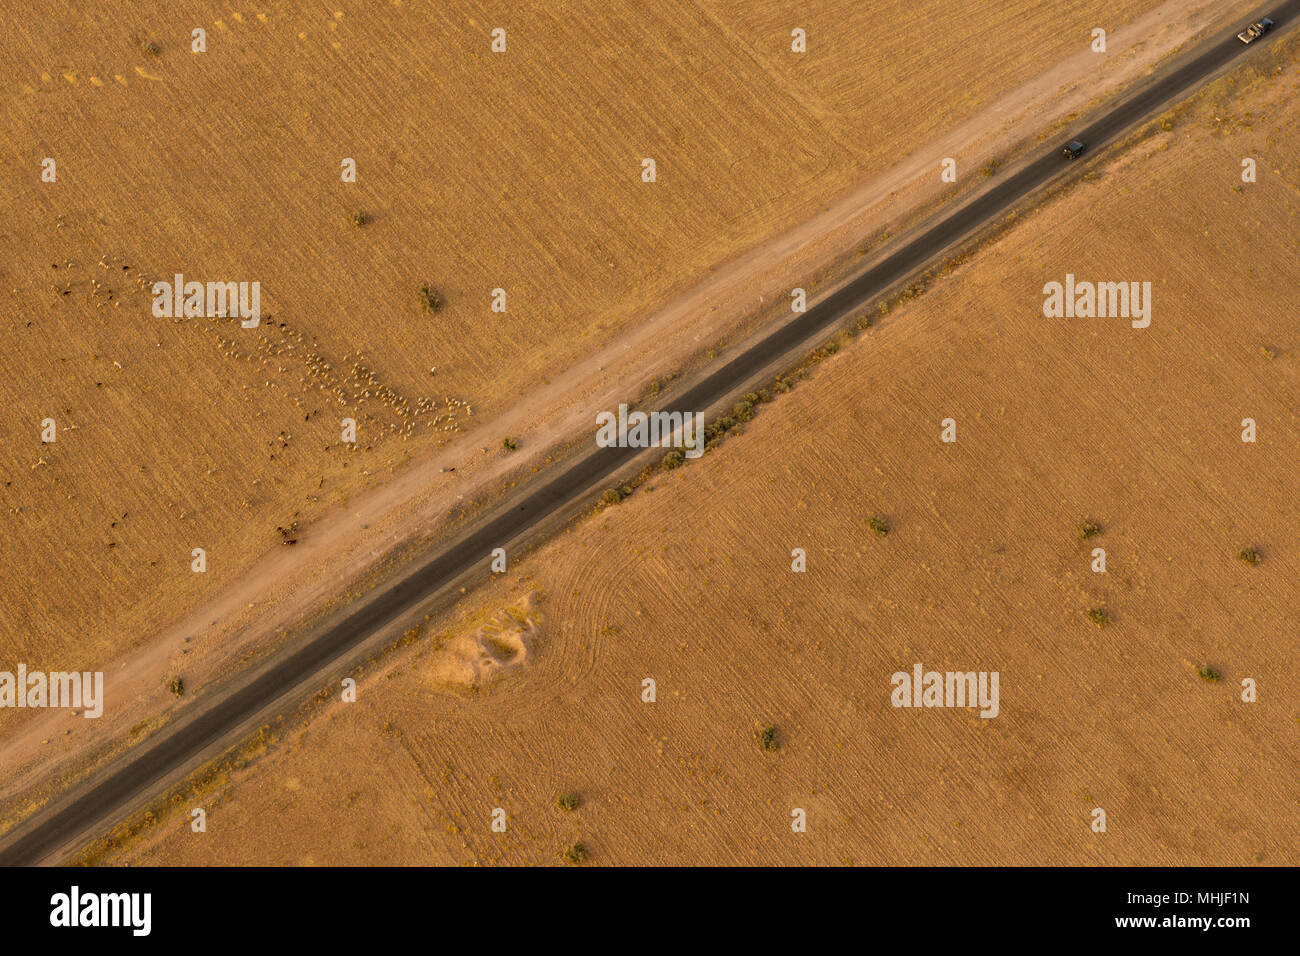 Maroc road in the desert near Marrakech aerial view - Stock Image